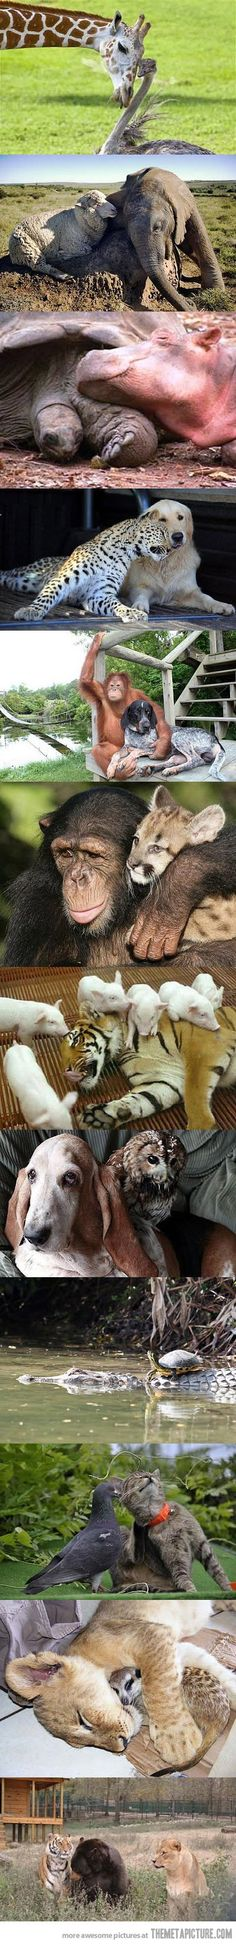 Unlikely Friendships so awesome